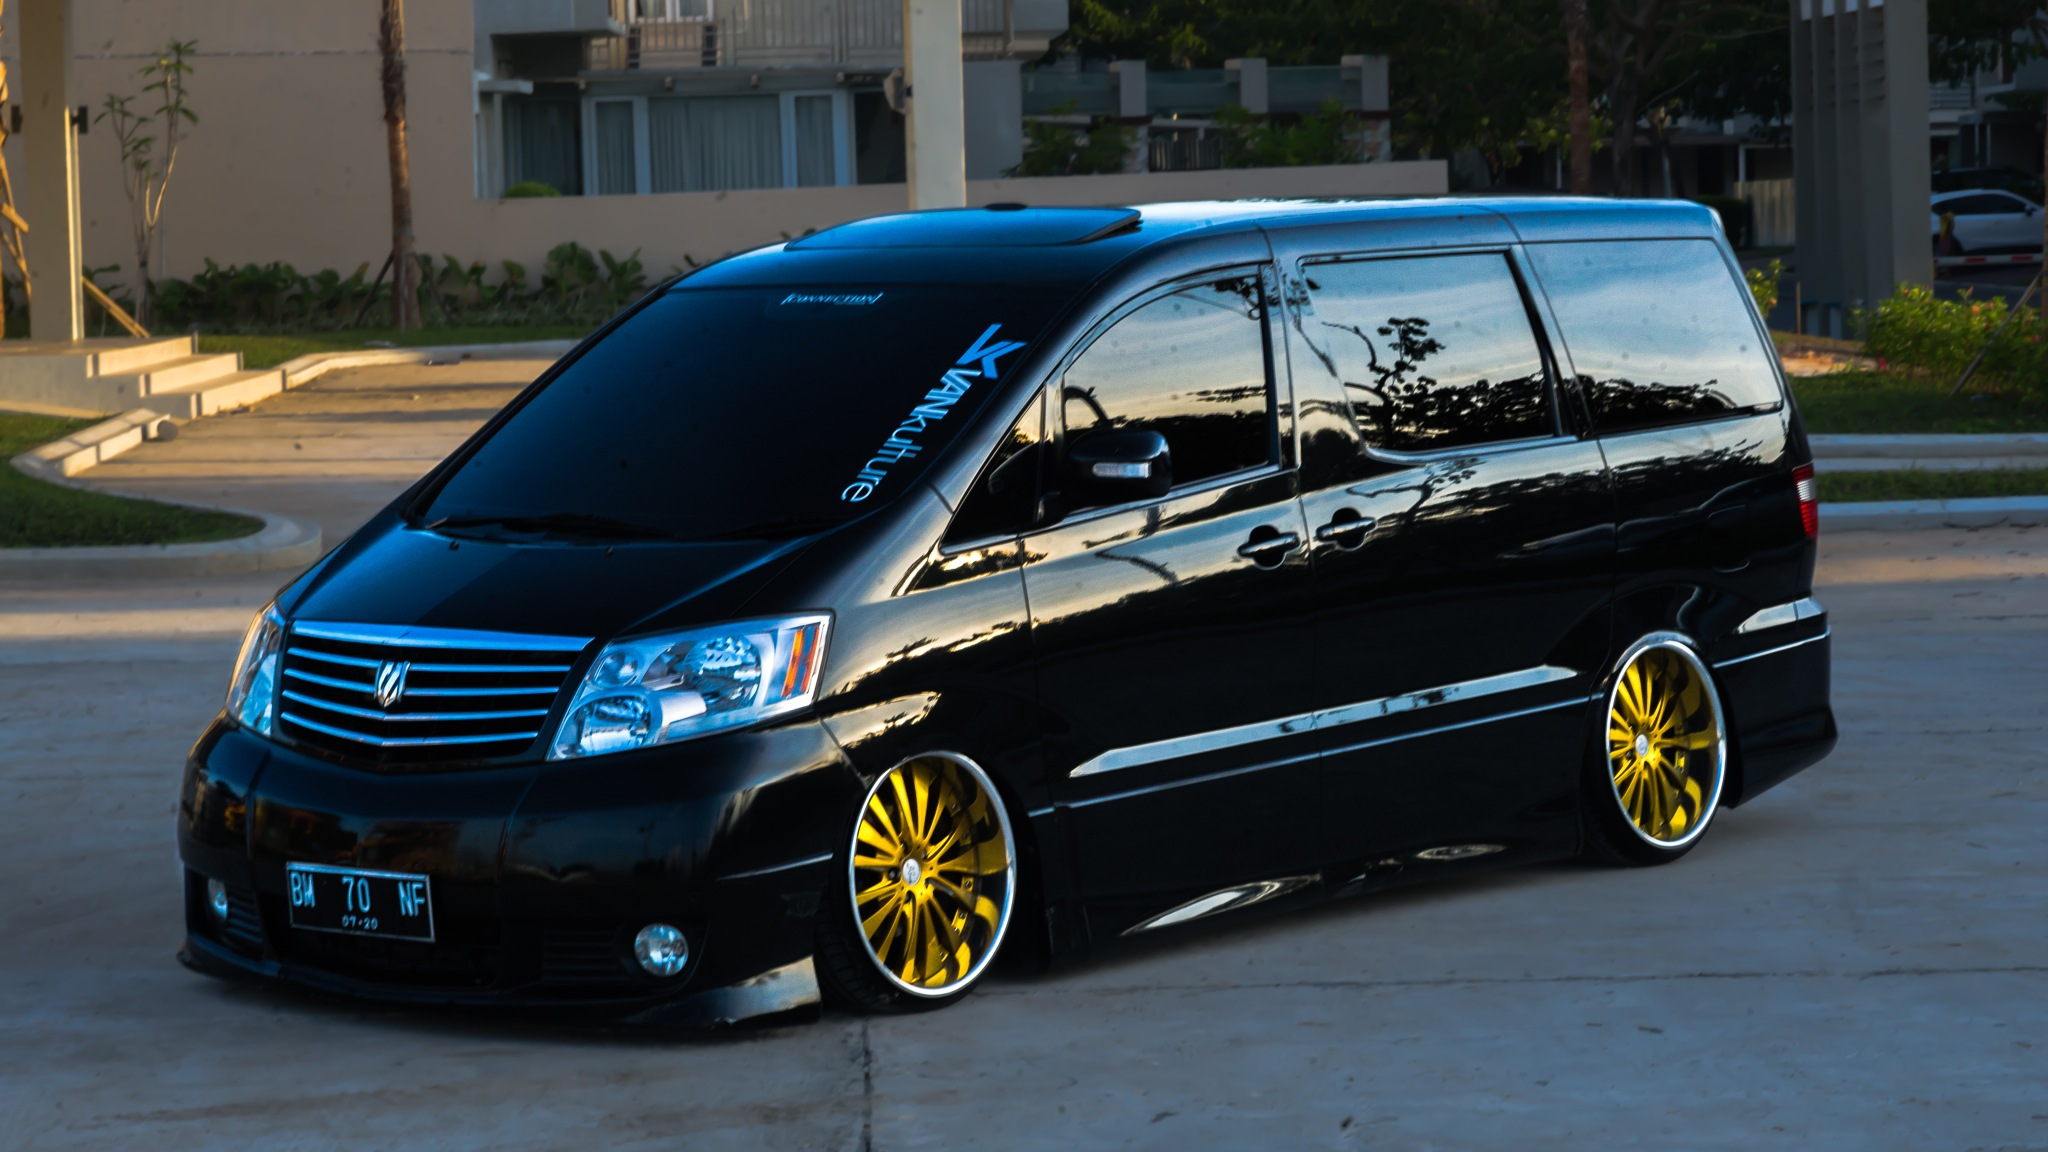 The Alphard's park by gettinlow